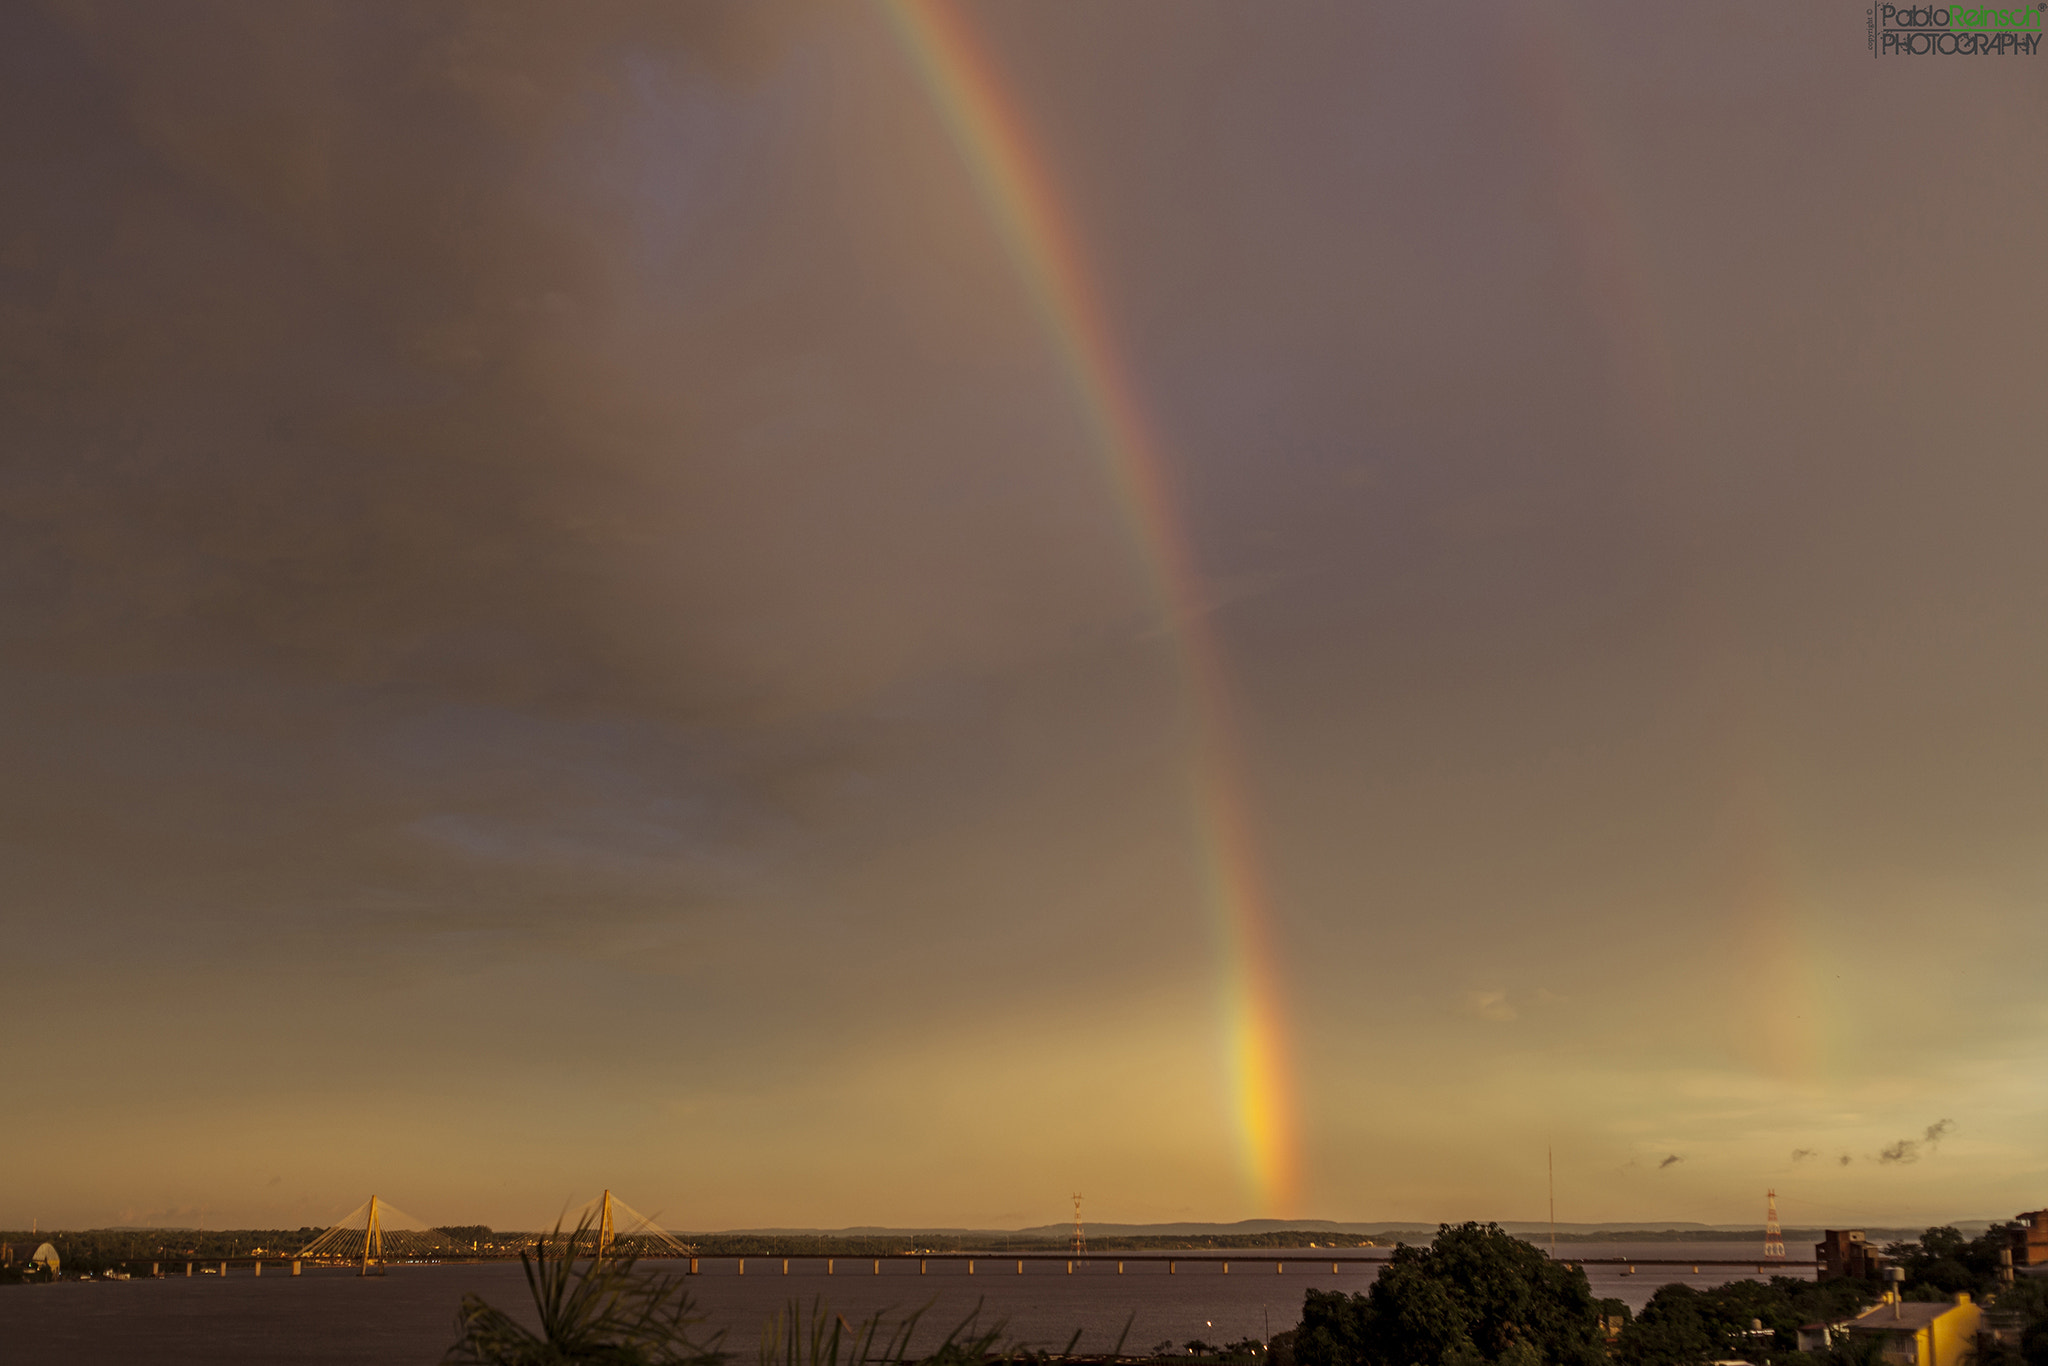 Photograph Mientras tanto... El arco iris.- by Pablo Reinsch on 500px